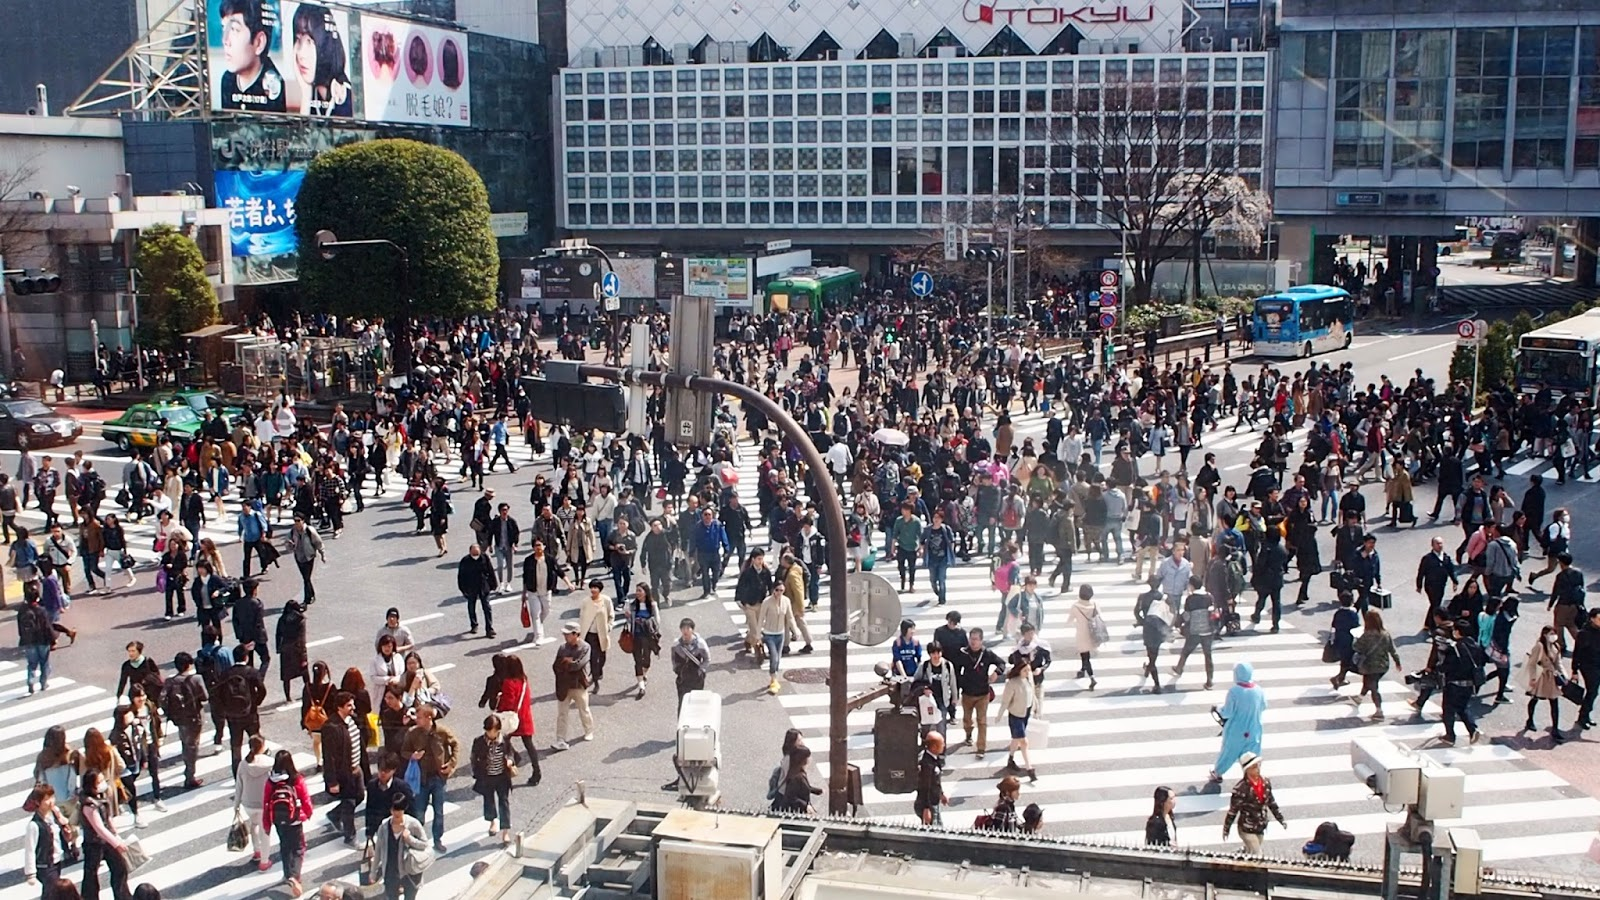 Walk Across the Busiest Crossing in the World - Shibuya